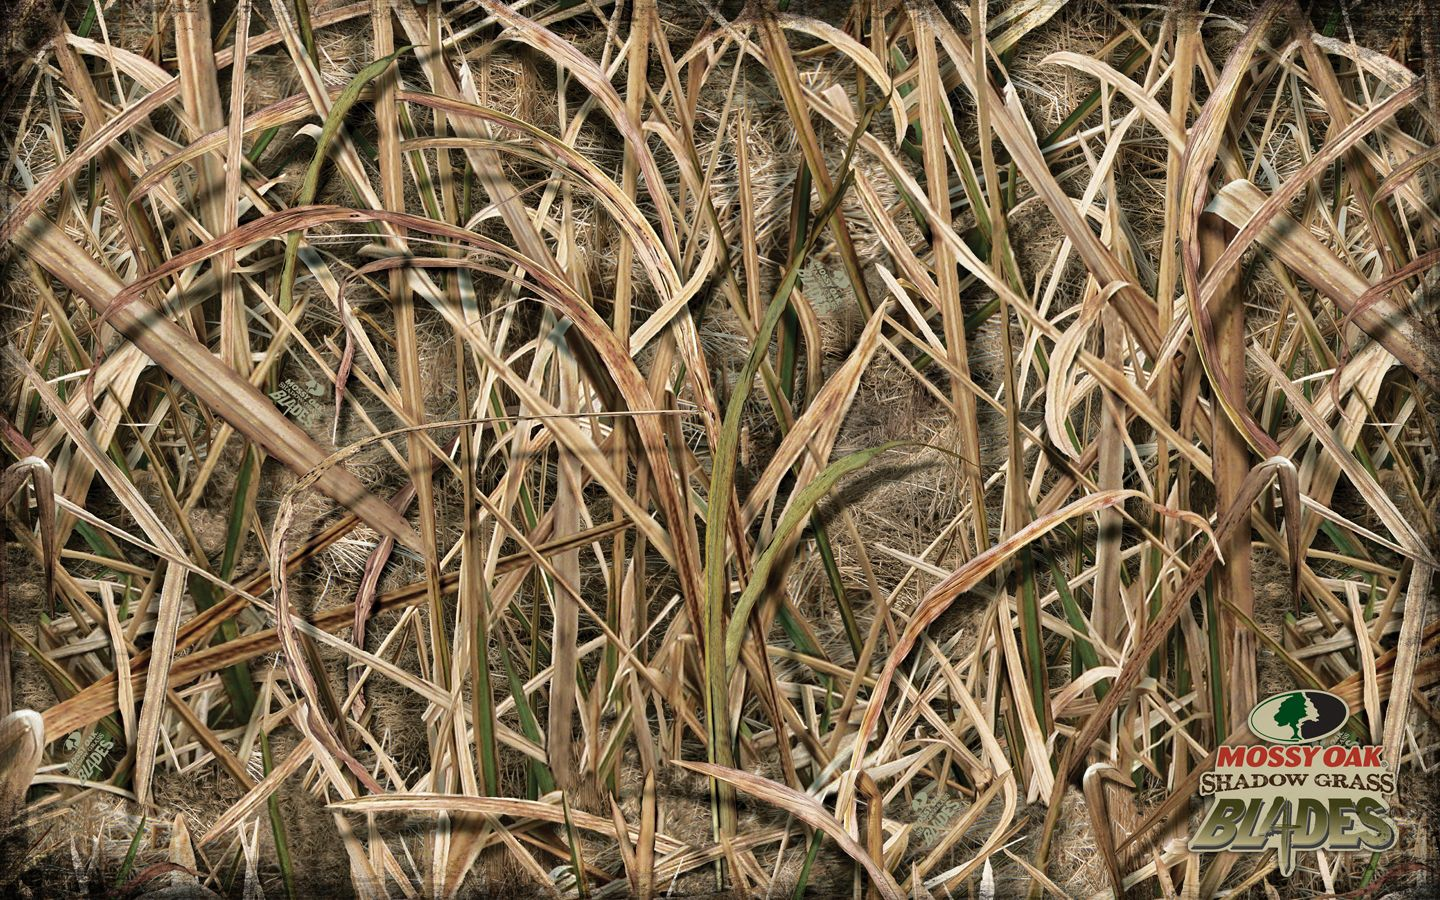 New Mossy Oak Shadow Grass Blades Camo Wallpaper (1440x900 ...